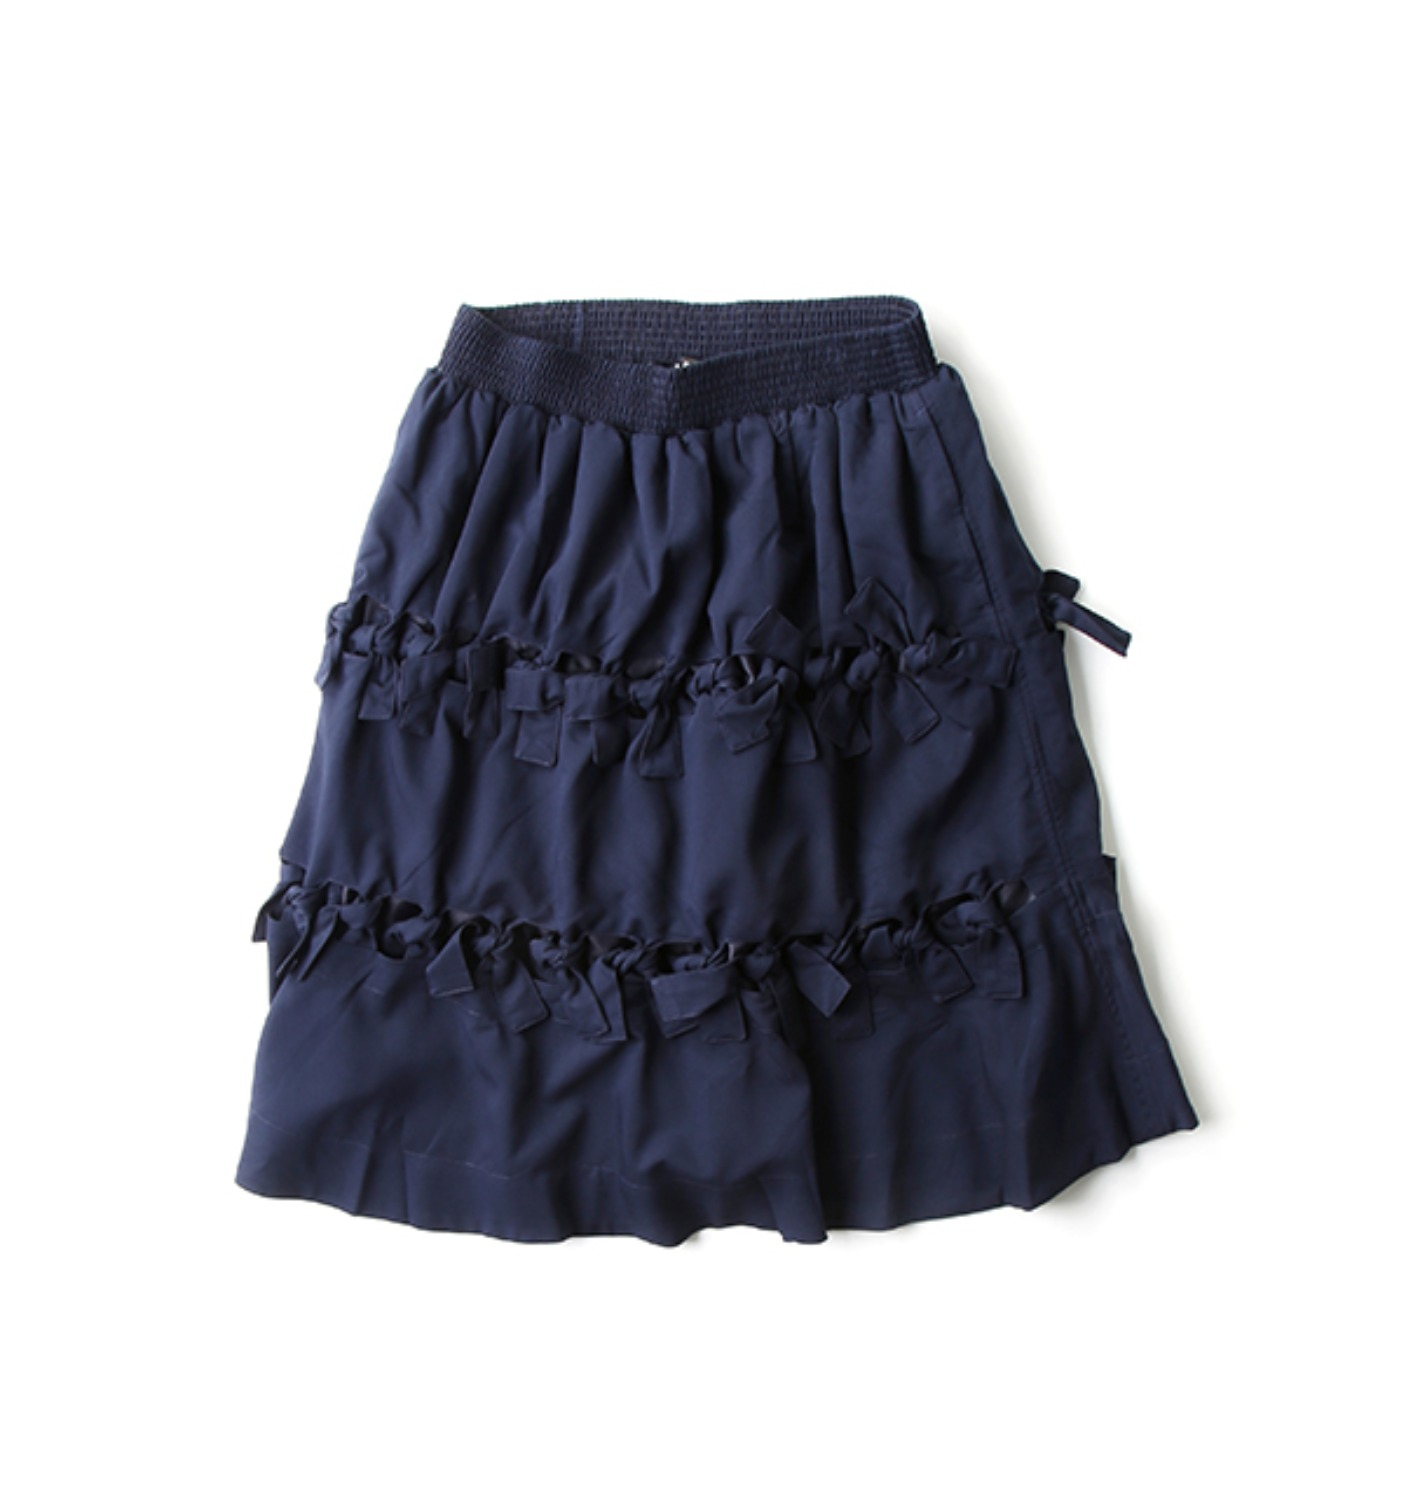 CROSSED WIRES SKIRT NAVY